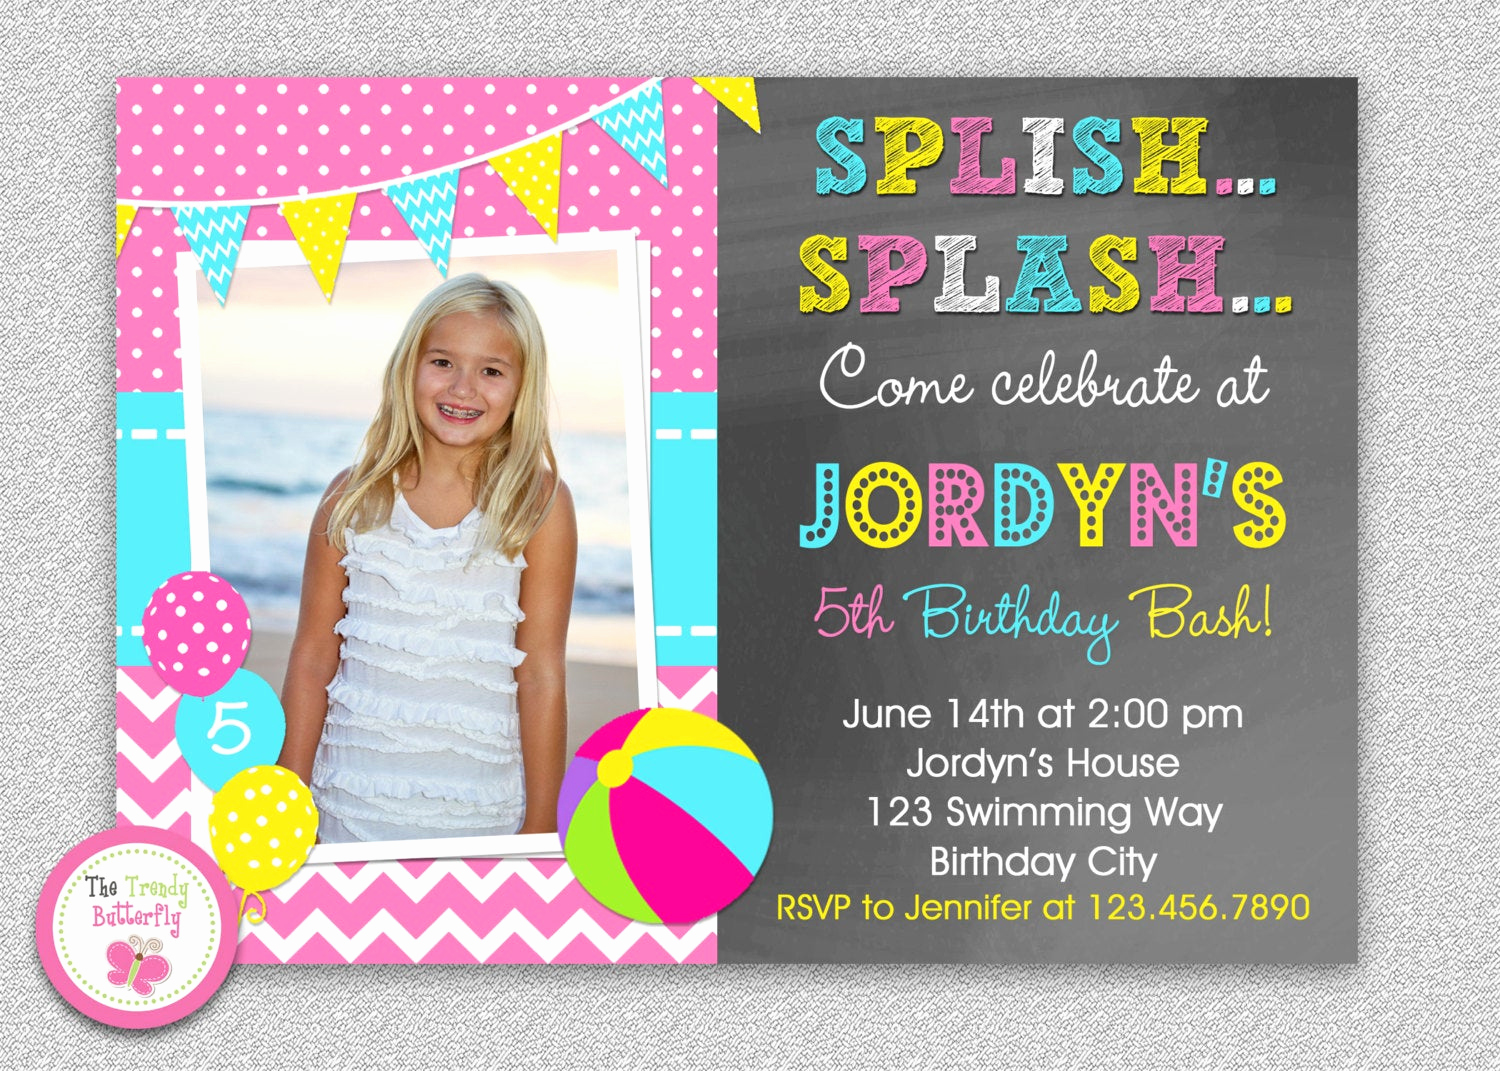 Pool Birthday Party Invitation New Pool Party Birthday Invitation Pool Party Invitations